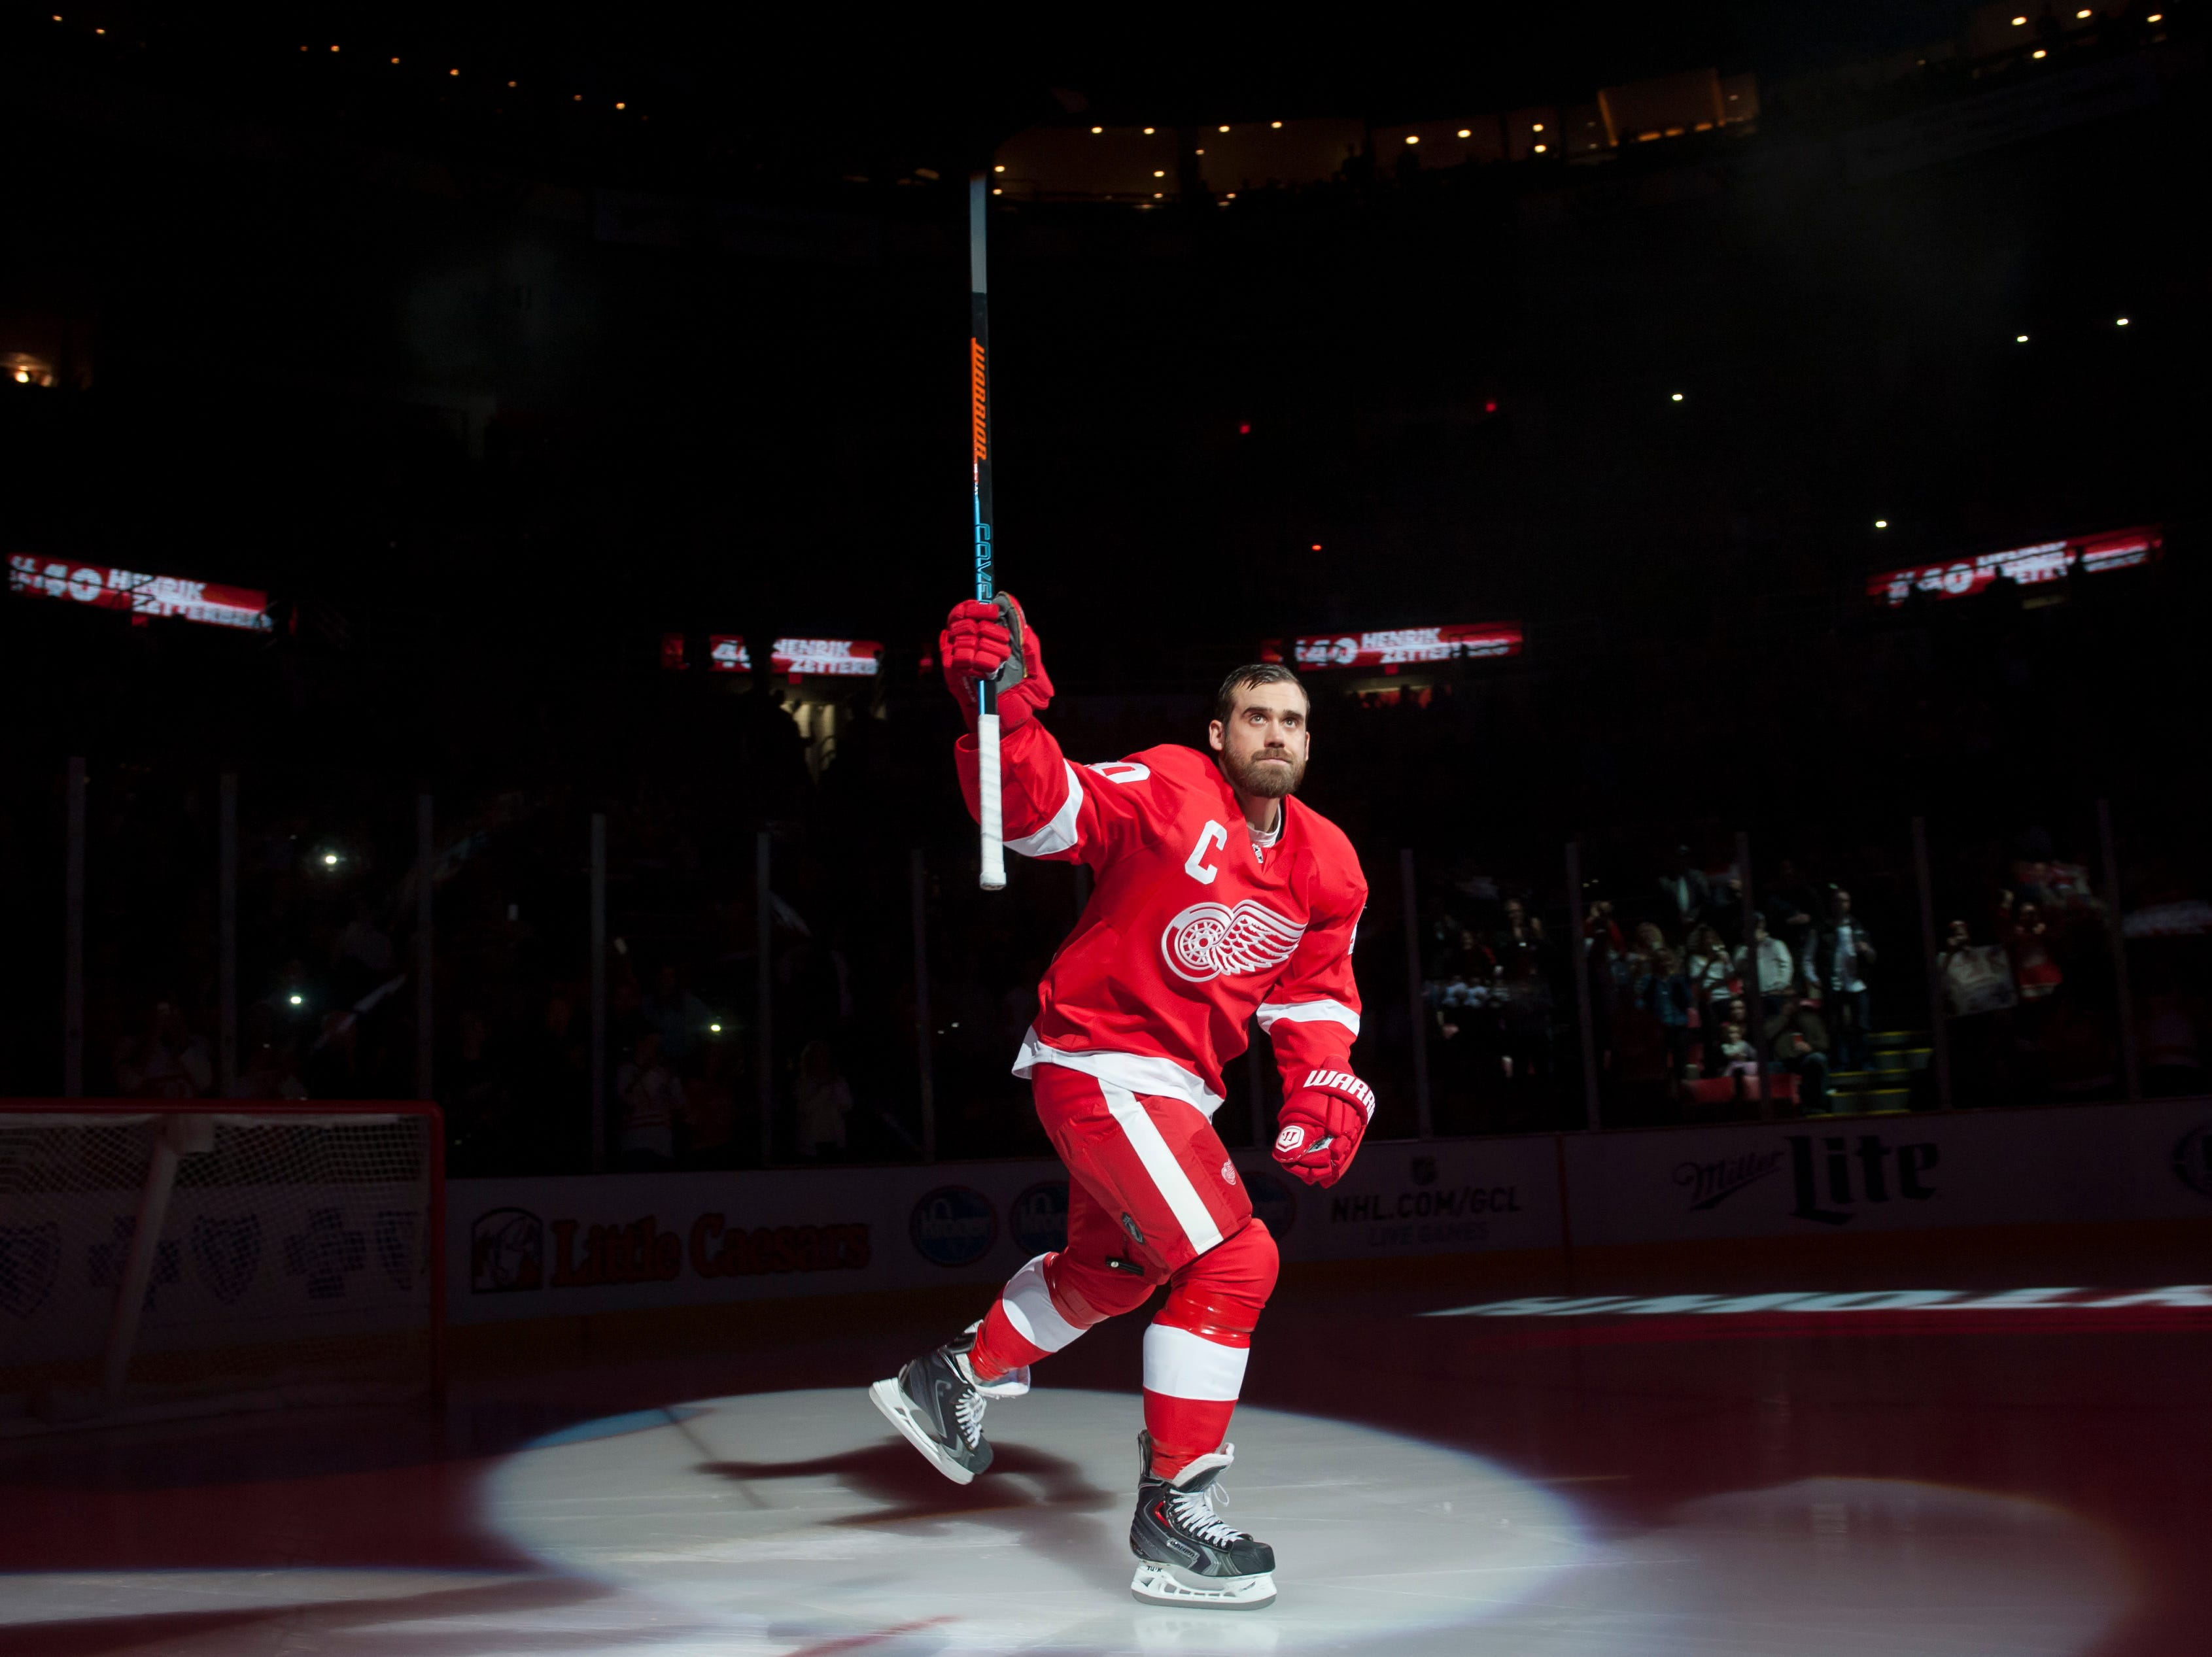 Detroit Red Wings left wing Henrik Zetterberg skates onto the ice for pre-game introductions before the start a game against the Boston Bruins at Joe Louis Arena, in Detroit, October 9, 2014.